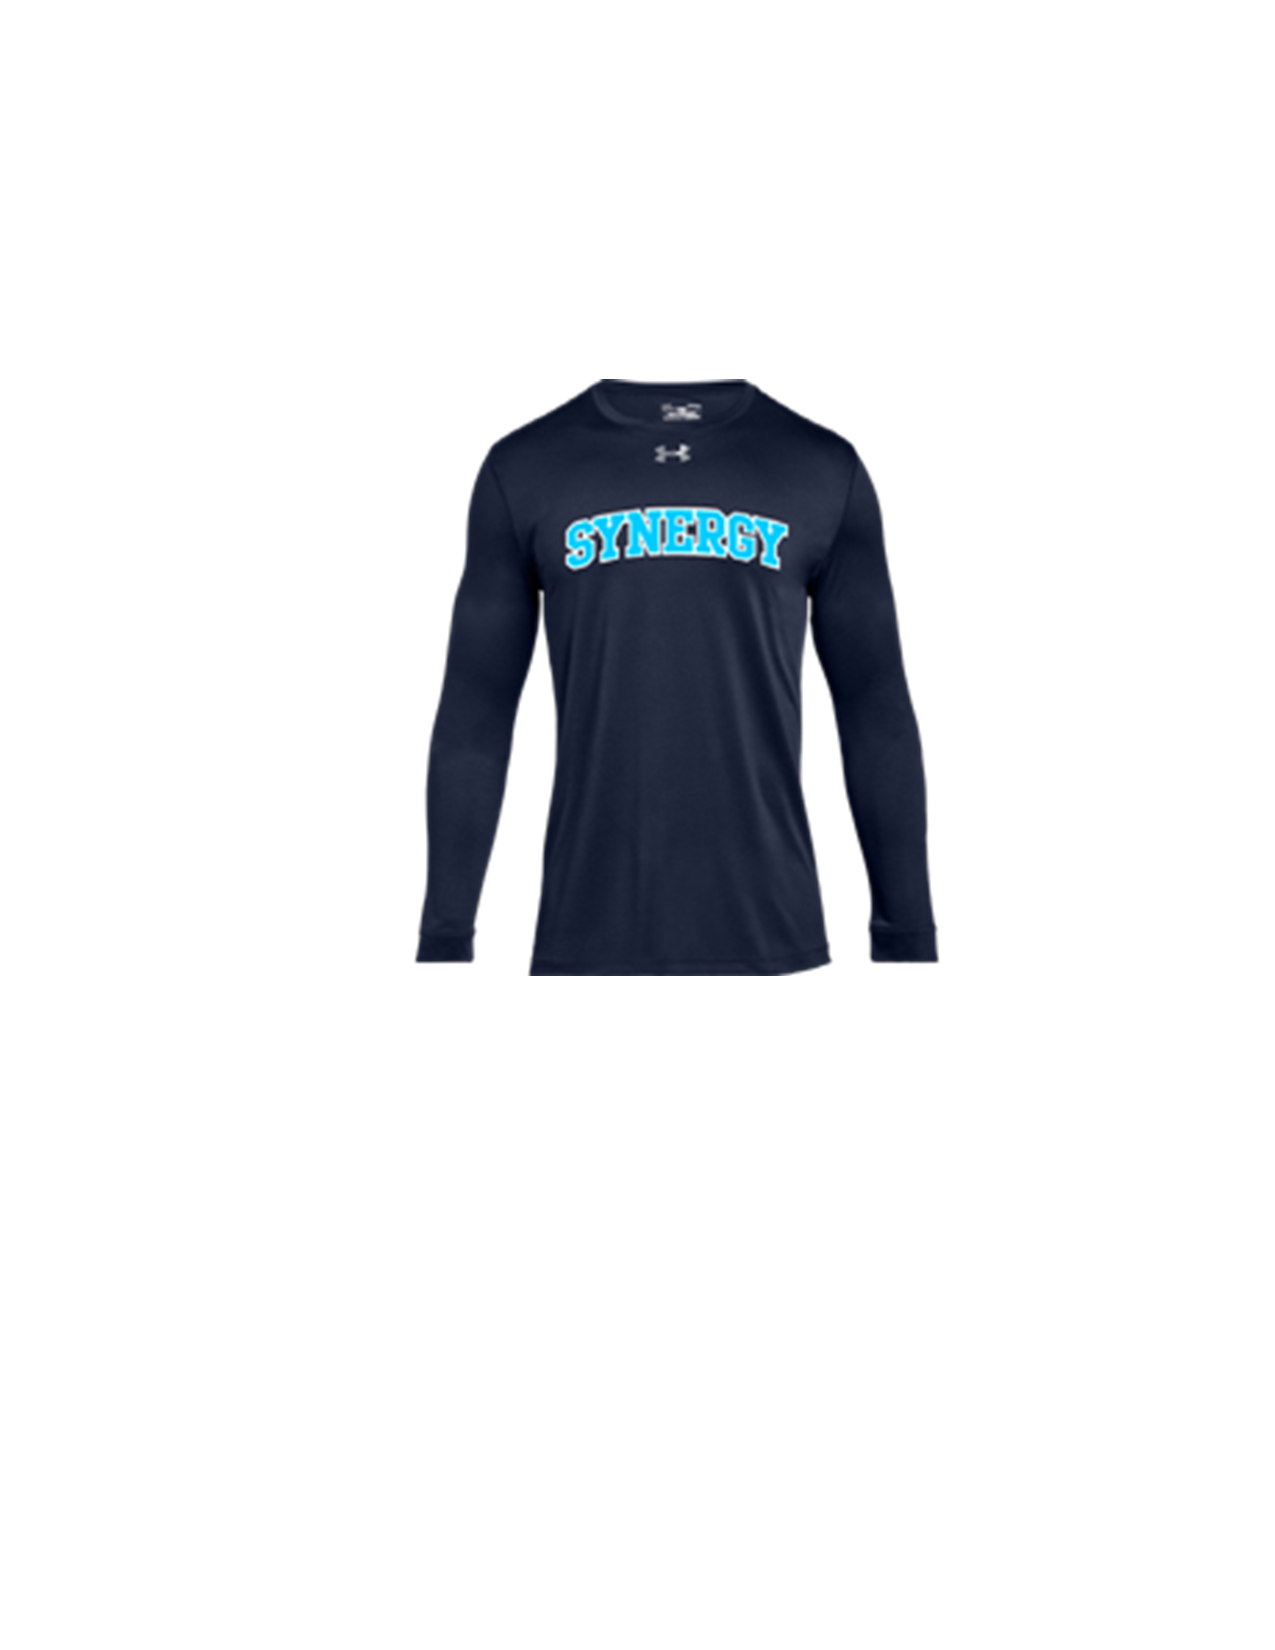 Men's/Youth Under Armour Locker 2.0 Long Sleeve